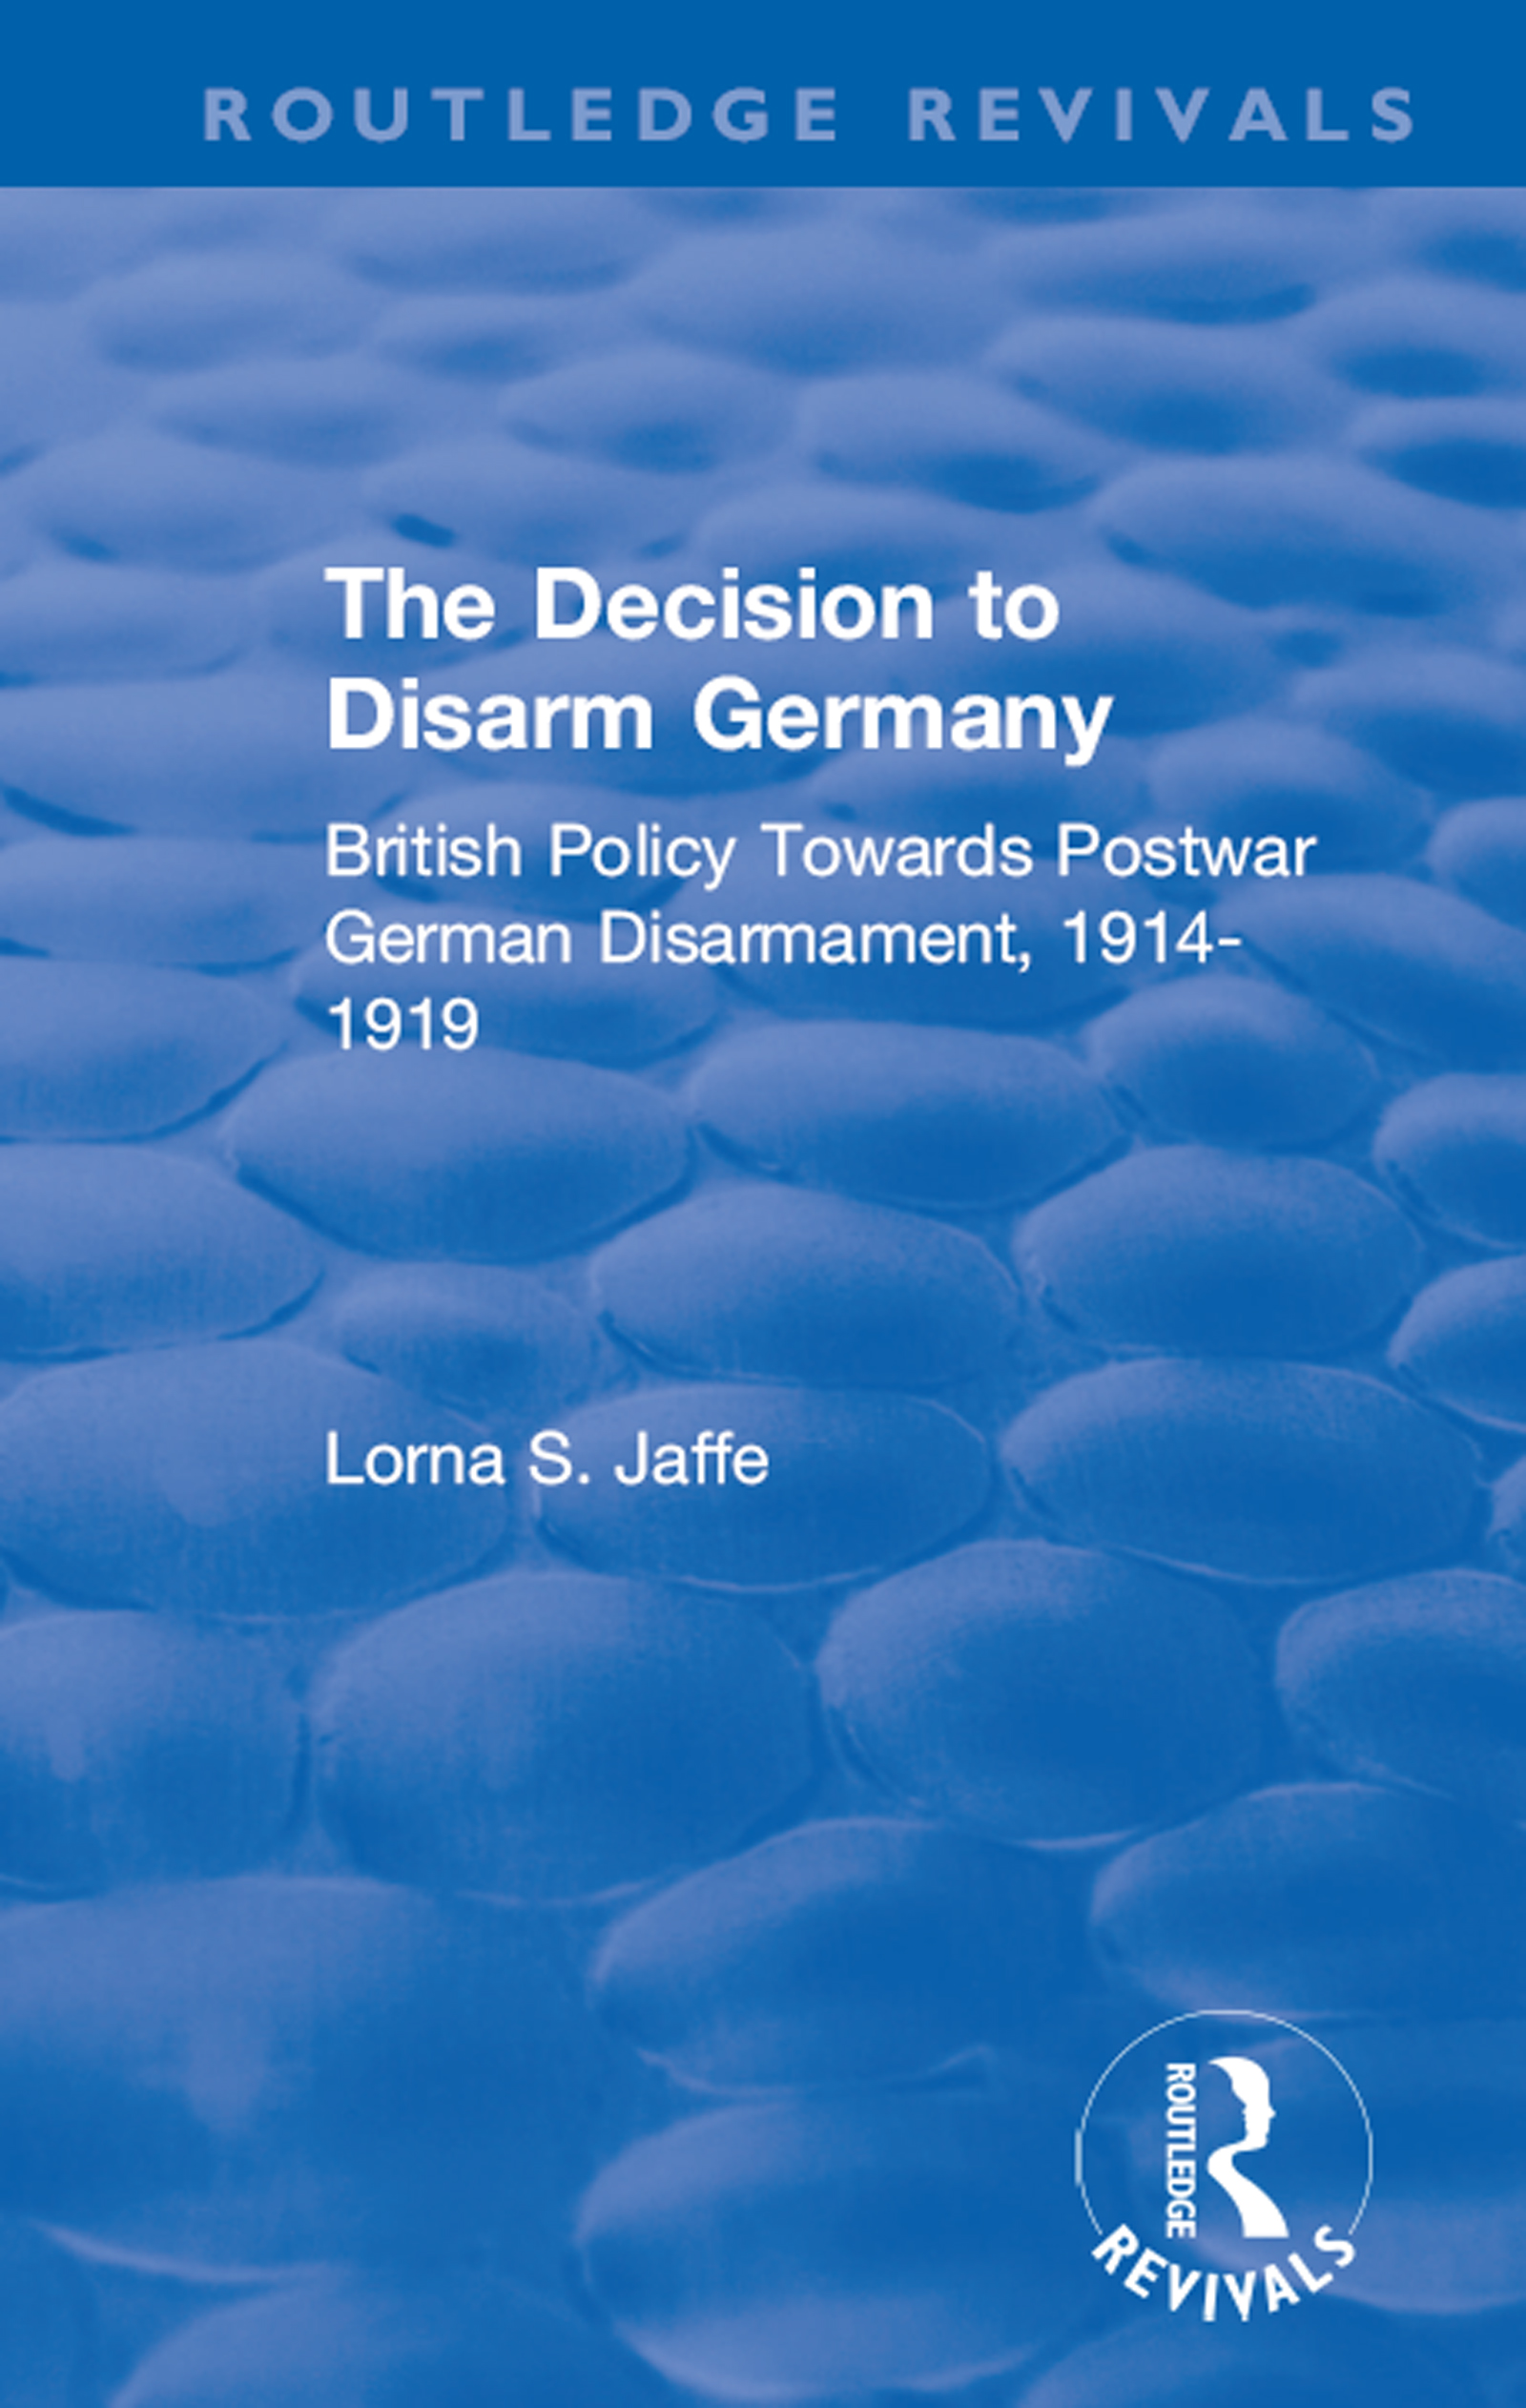 The Decision to Disarm Germany: British Policy Towards Postwar German Disarmament, 1914-1919 book cover